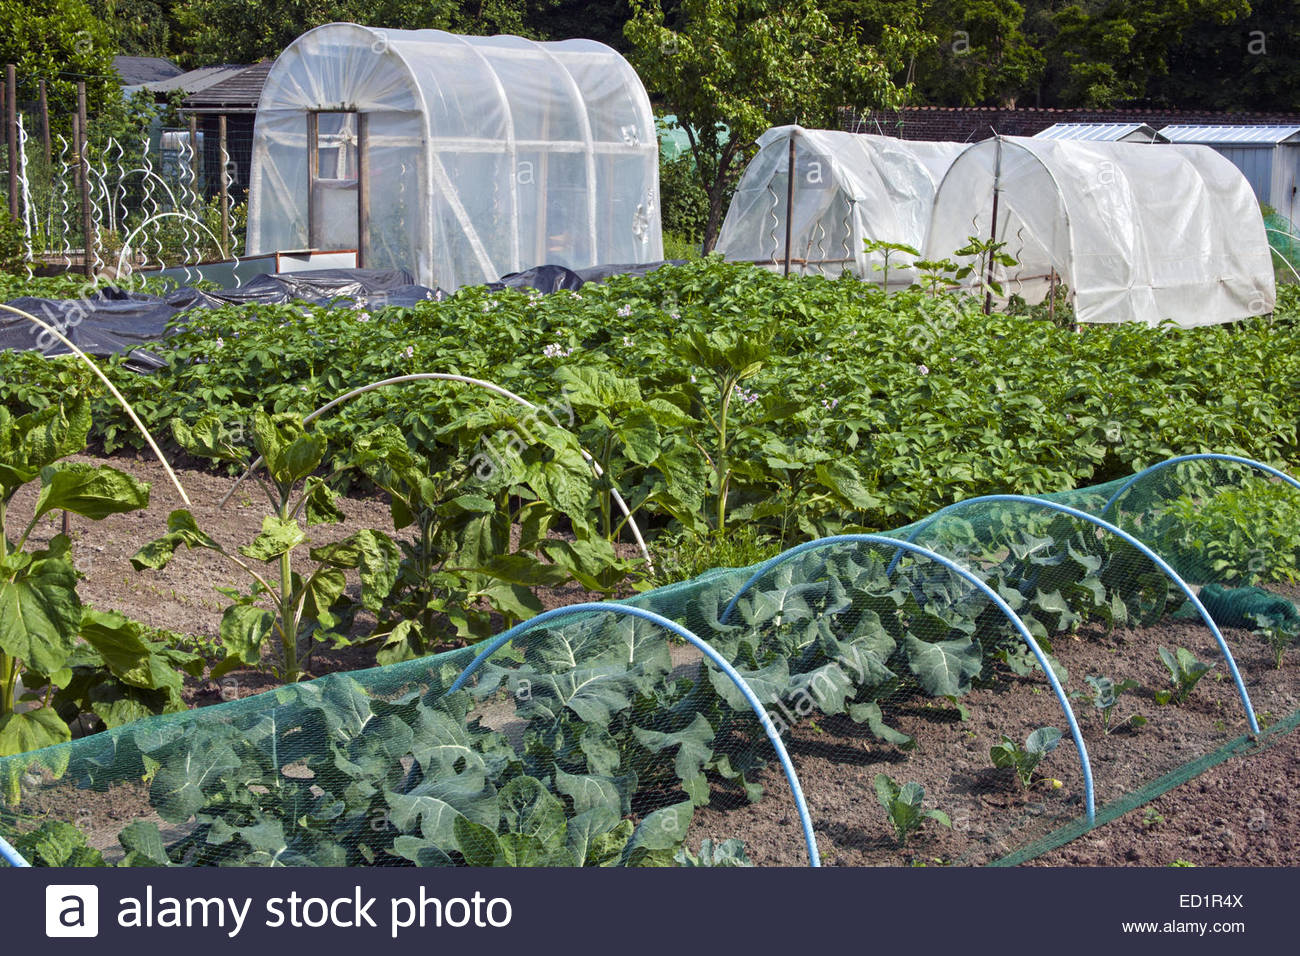 Plastic Greenhouse And Tunnels And Vegetables Growing In Kitchen Garden /  Vegetable Garden / Potager